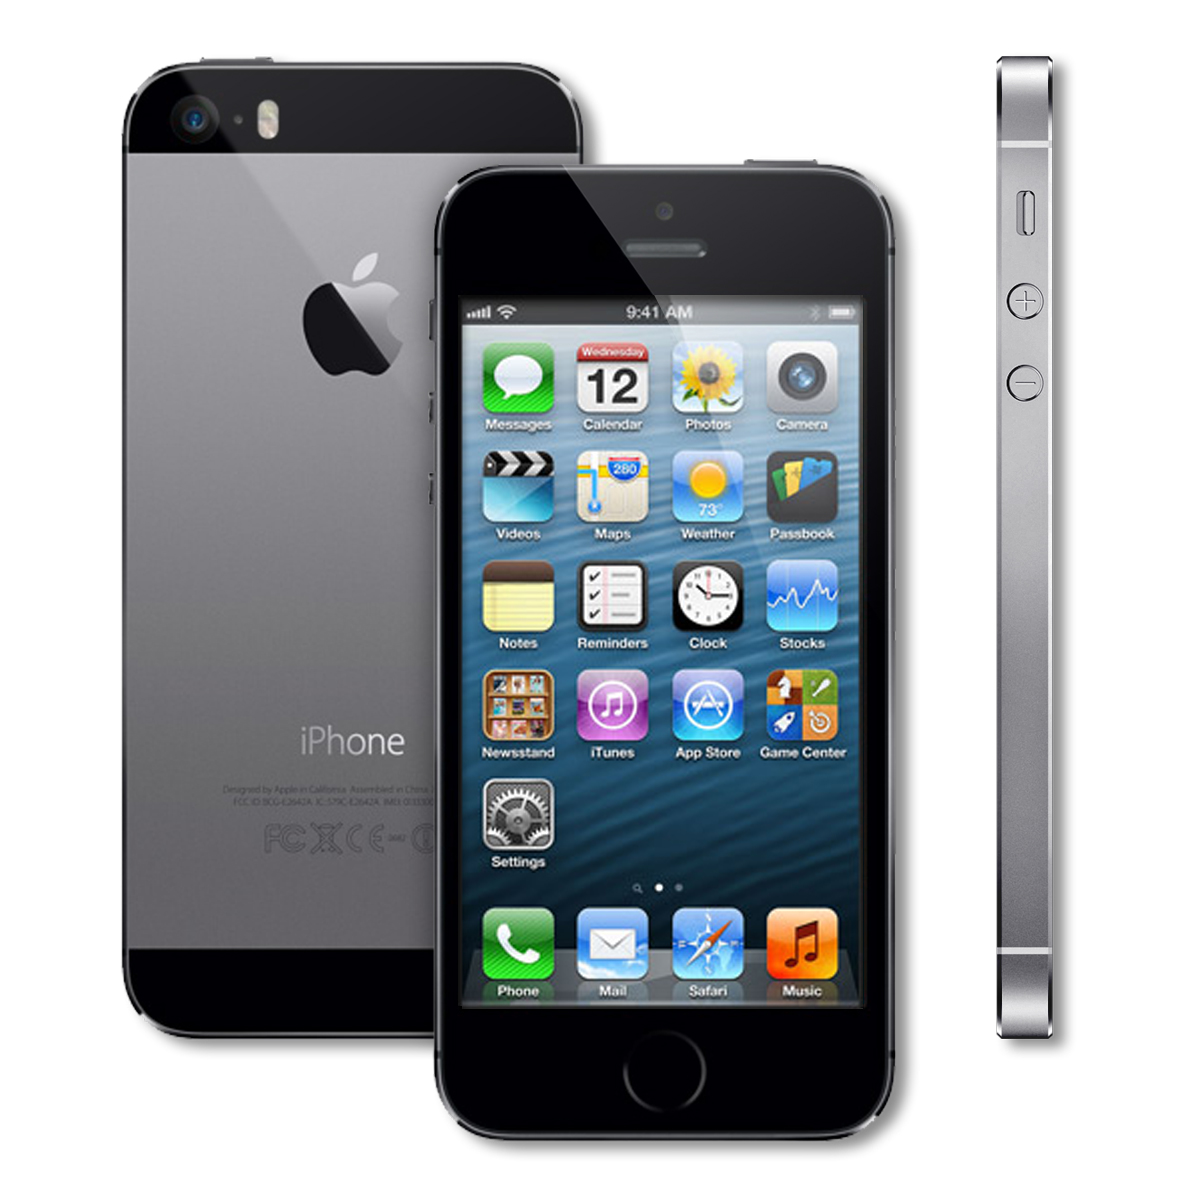 Apple iPhone 5s 16GB Certified Refurbished Factory Unlocked Smartphone A1453 | eBay